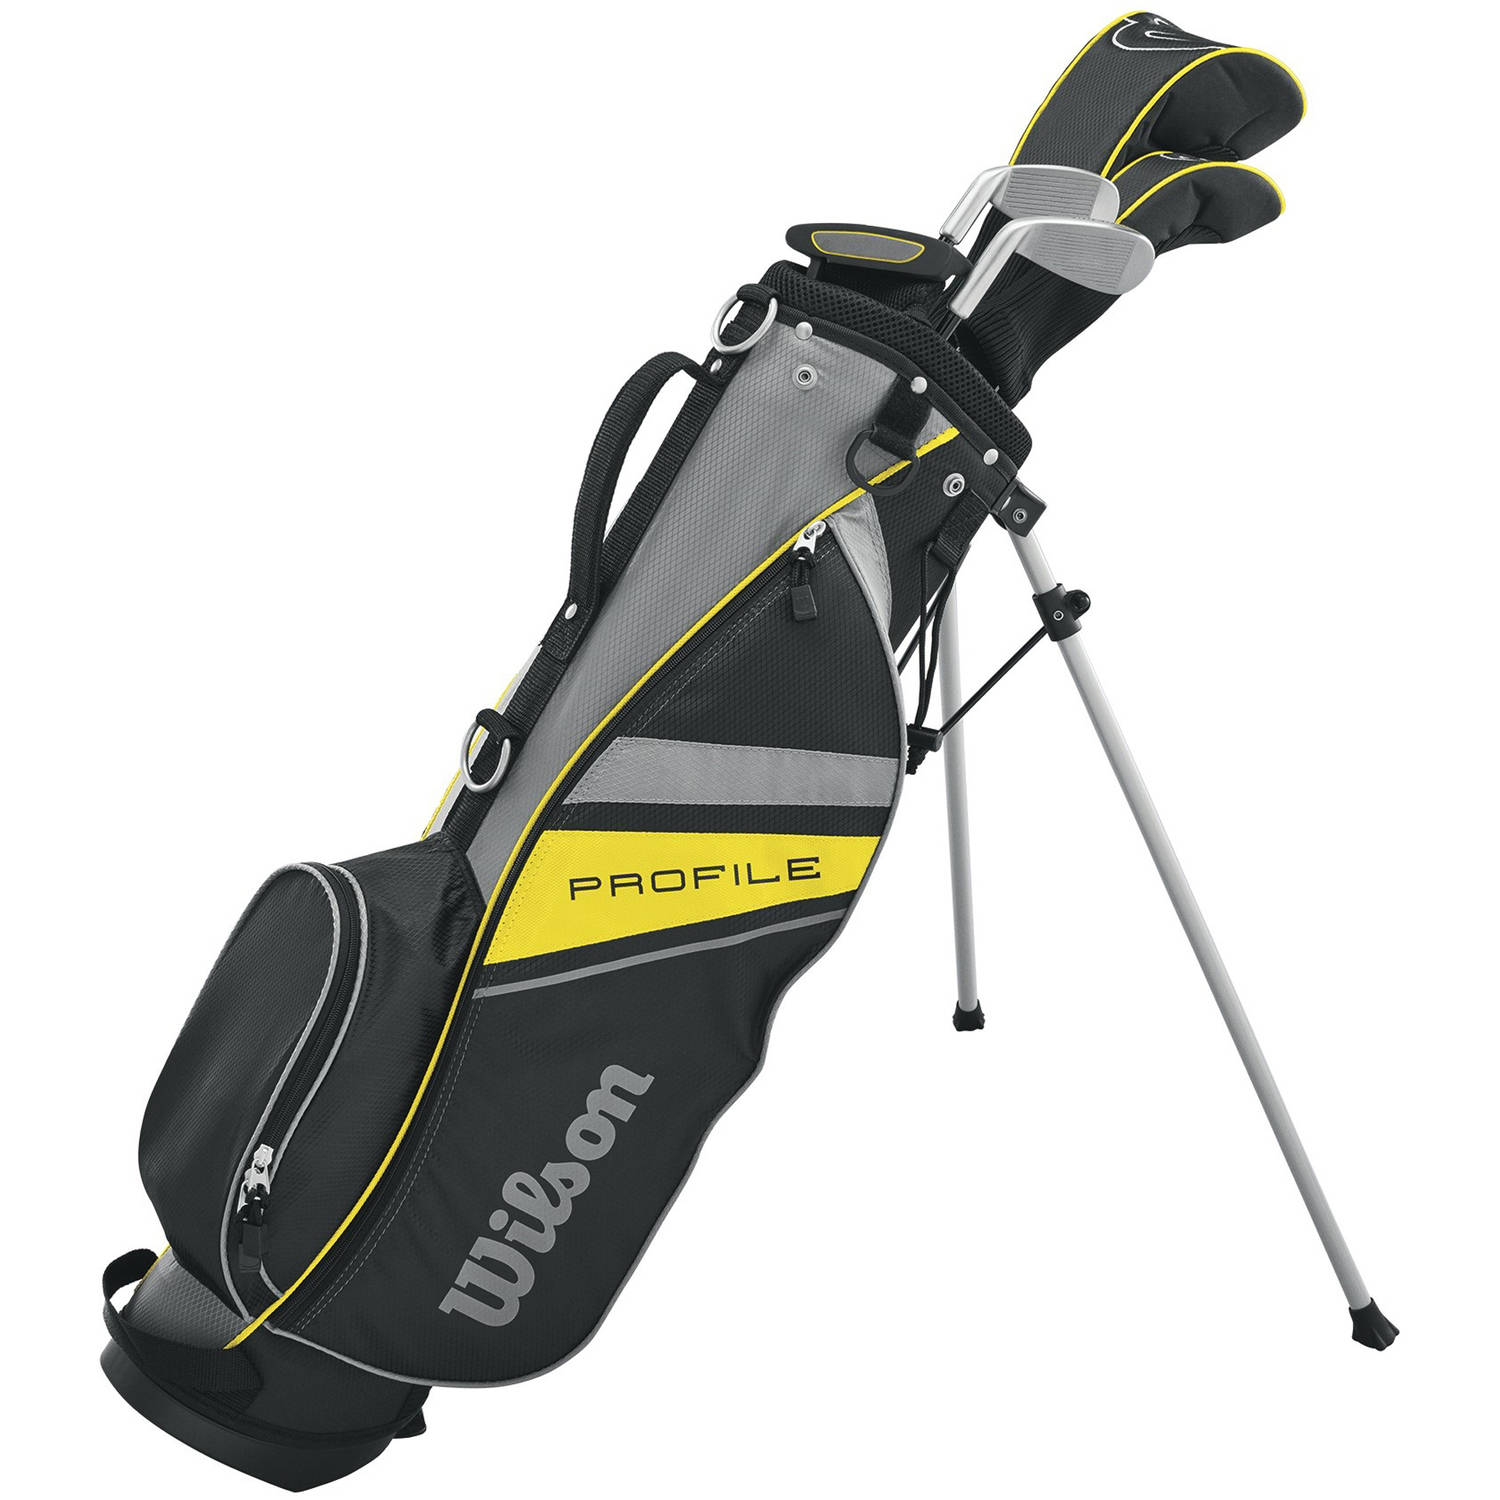 Wilson Profile JR Package Golf Set, Medium, Right Handed, Medium, For Ages 7-10 by Wilson Sporting Goods Co.